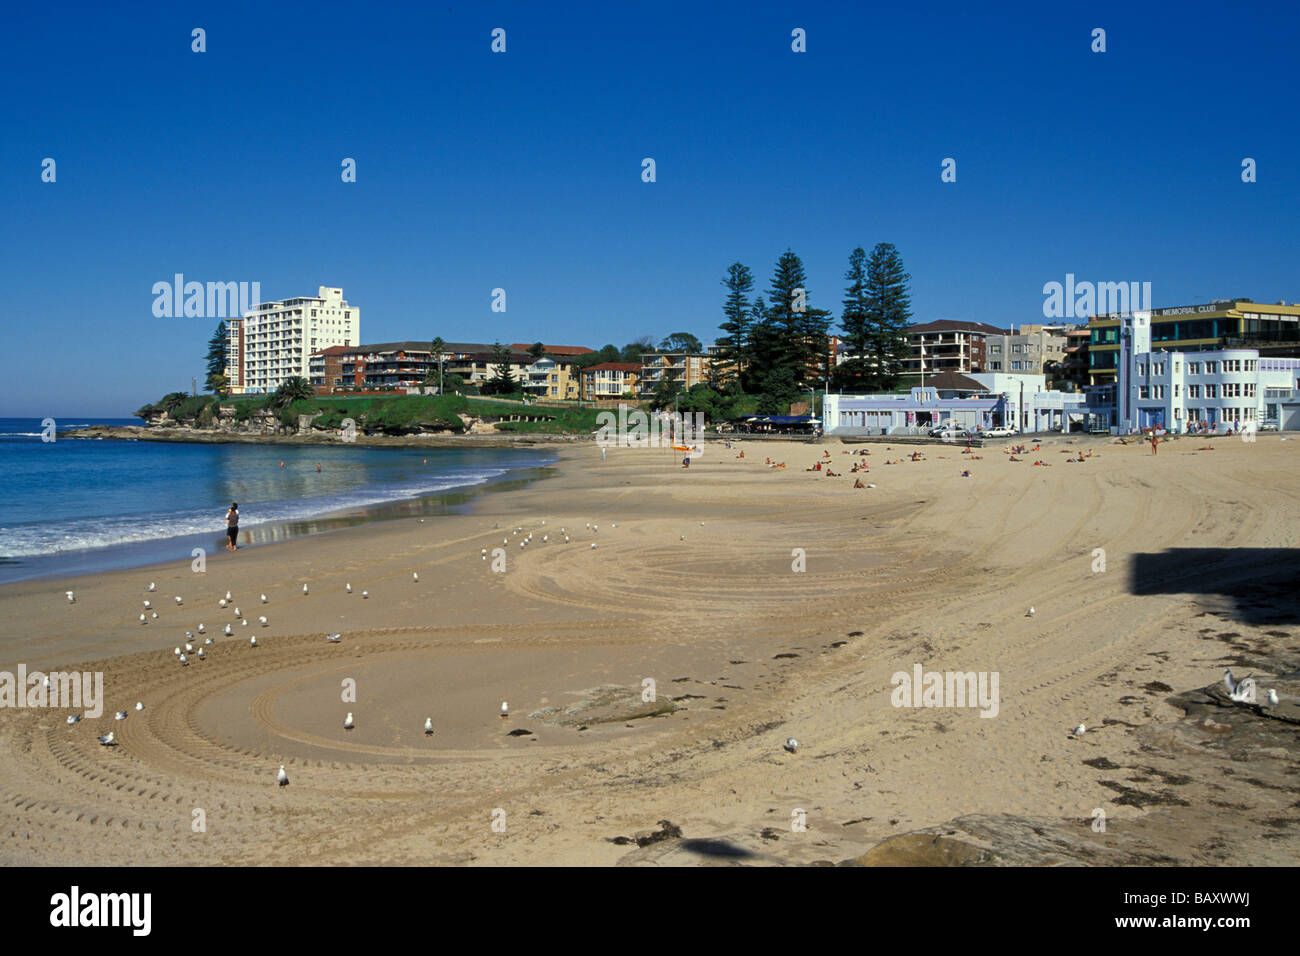 RSL & surf life saving club by Cronulla beach & park south of Botany Bay & Sydney in Sutherland Shire - Stock Image